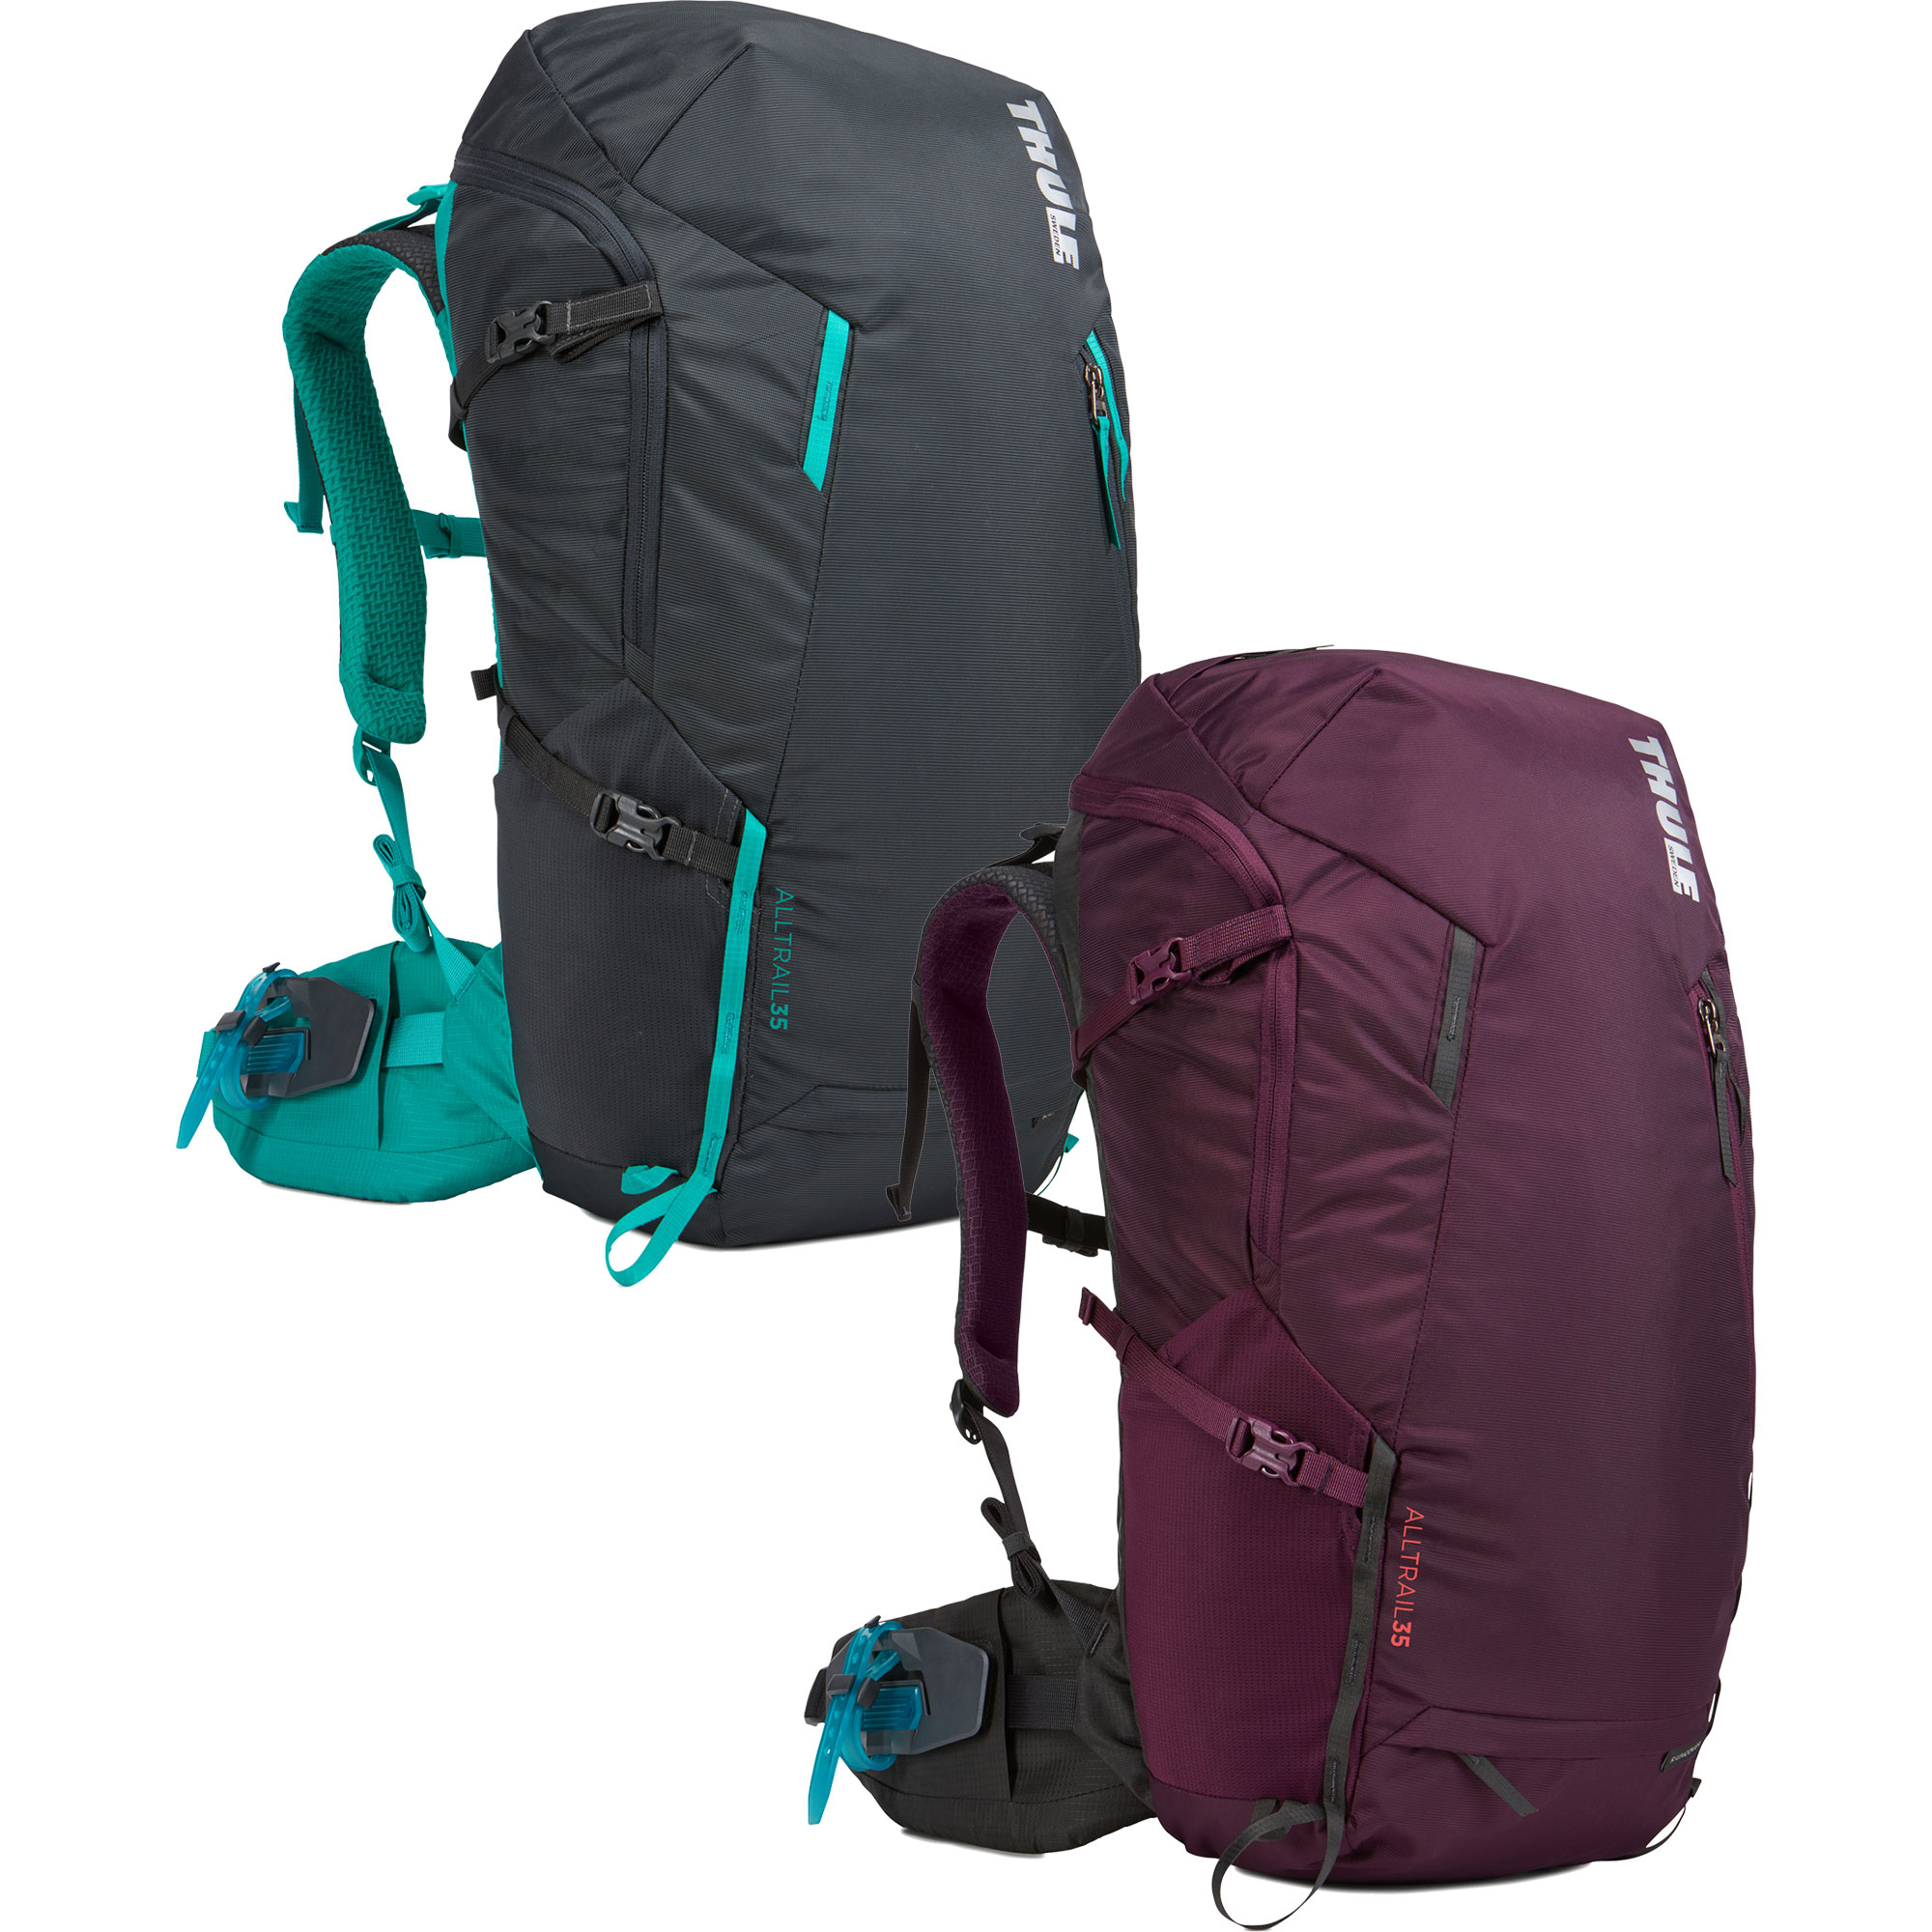 Thule backpacking